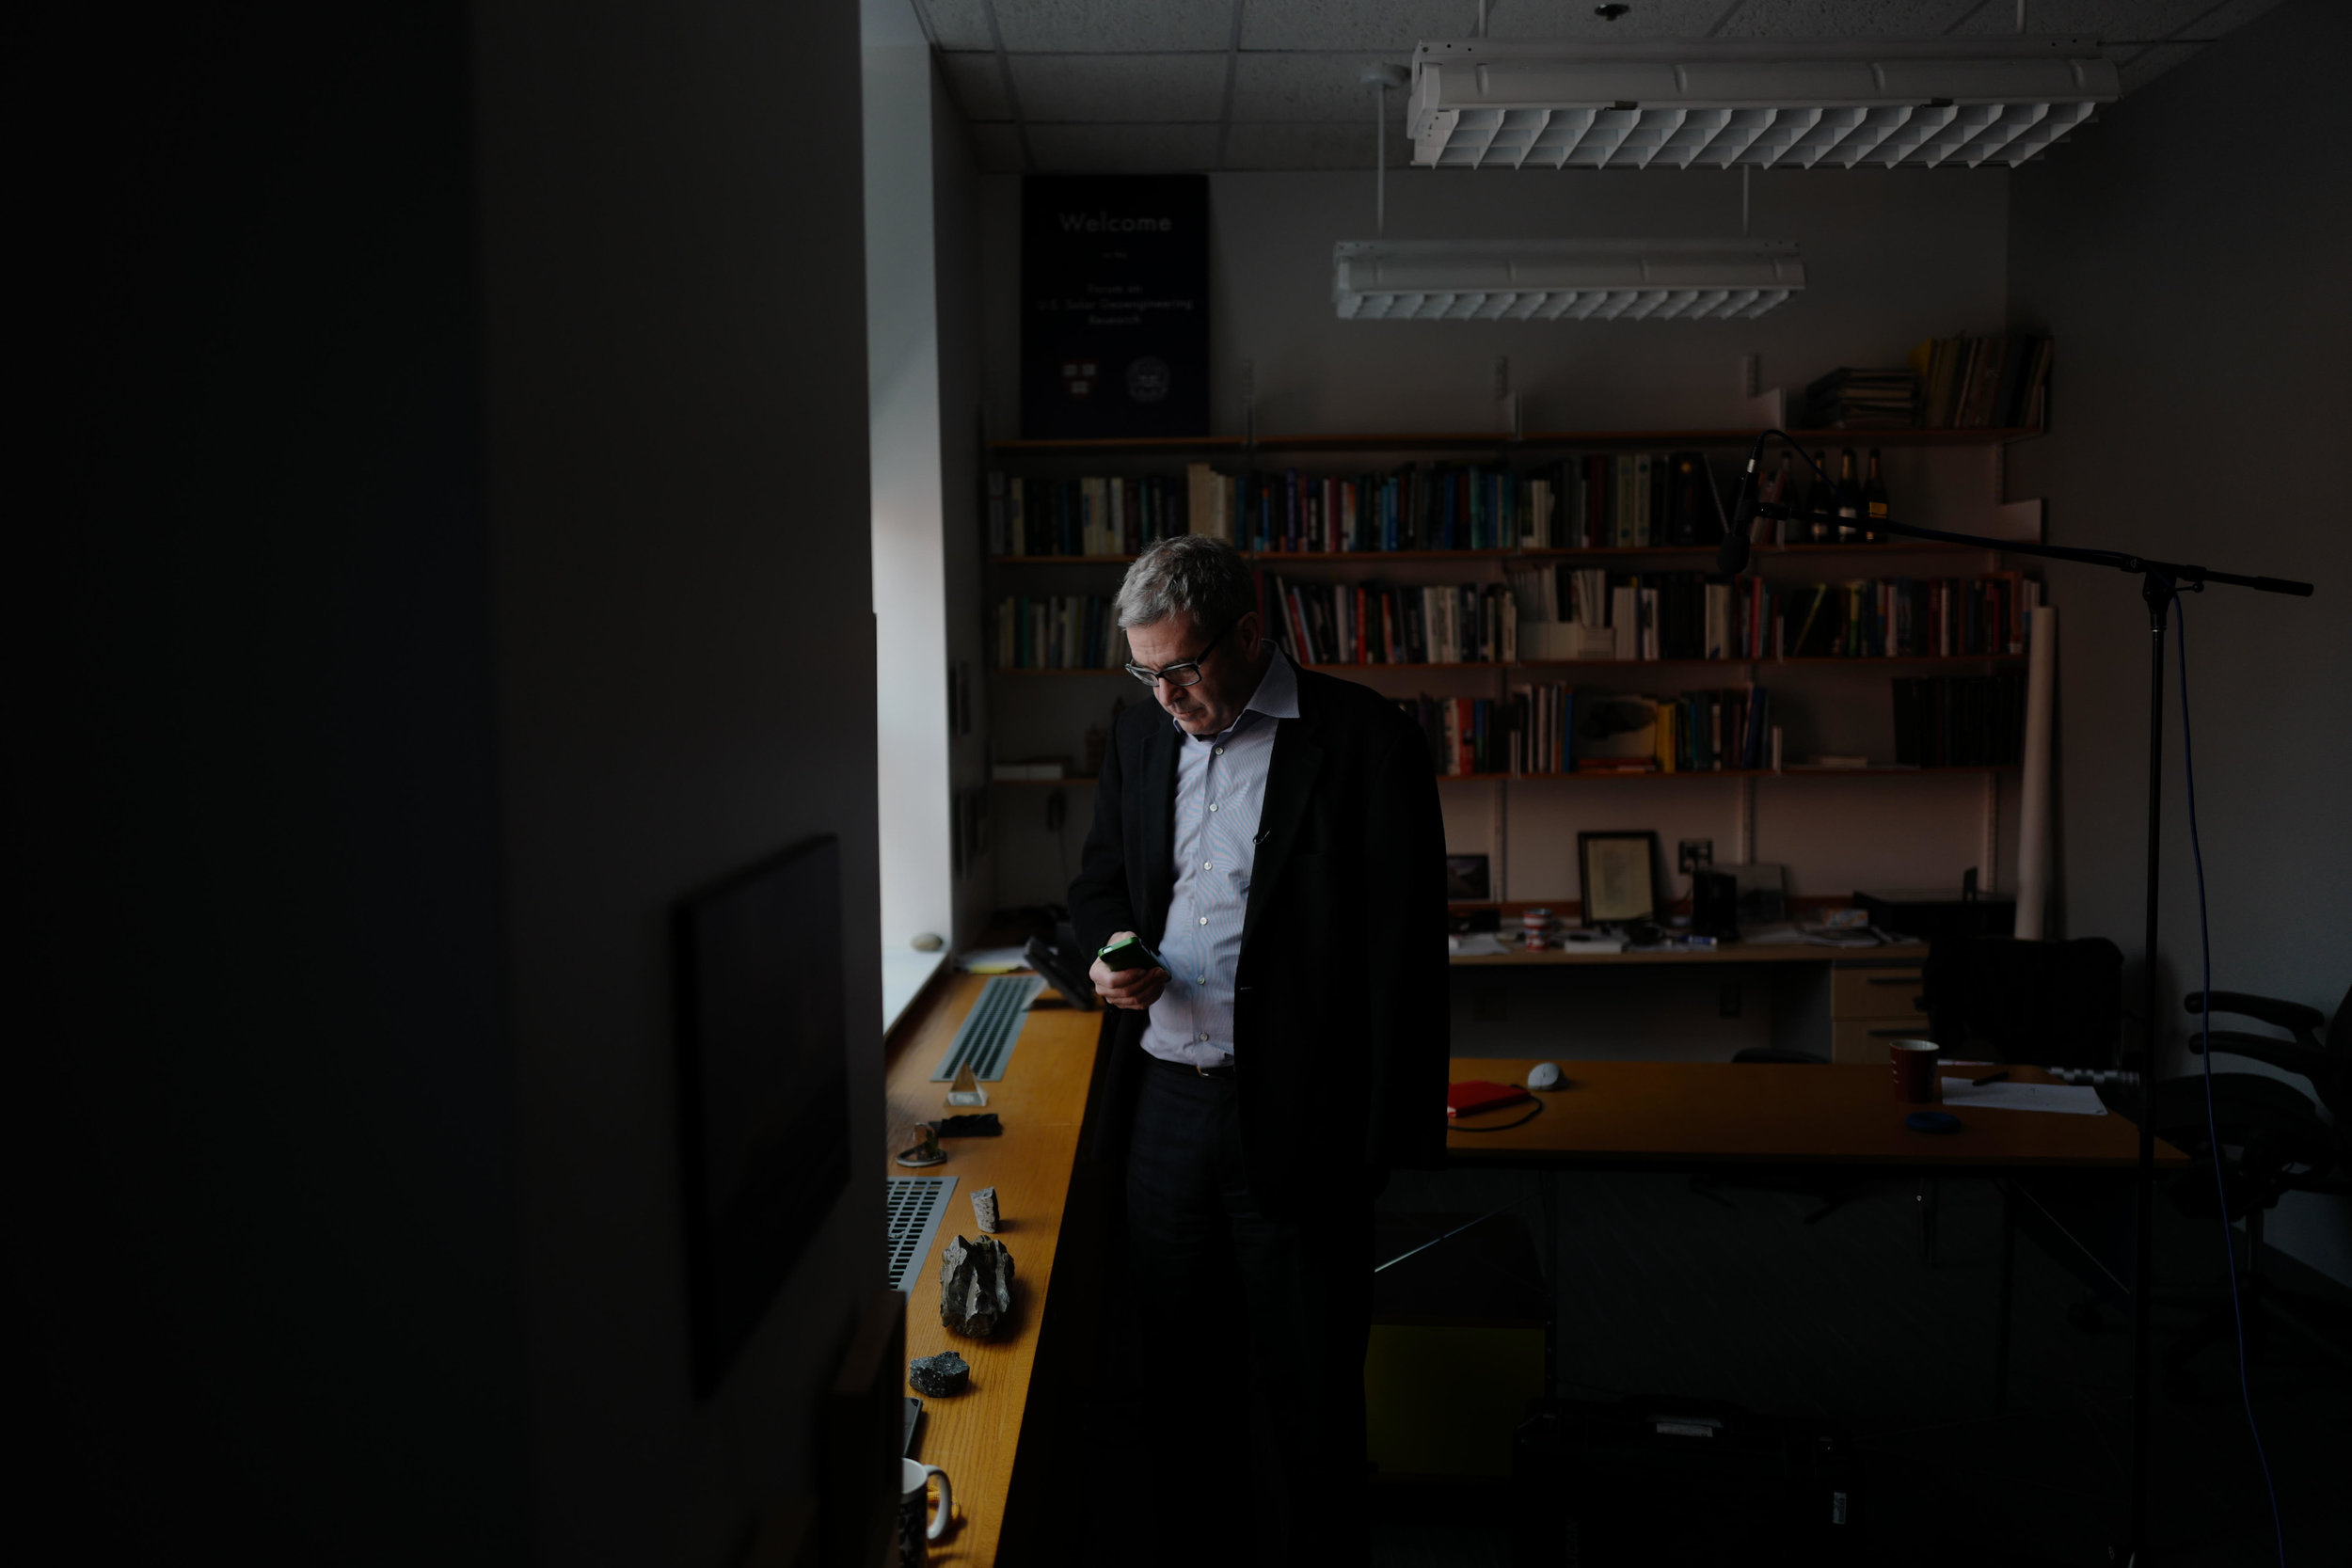 PBS/CNN Correspondent Miles O'Brien prepping for an interview with Climate Engineer David Keith at Harvard University